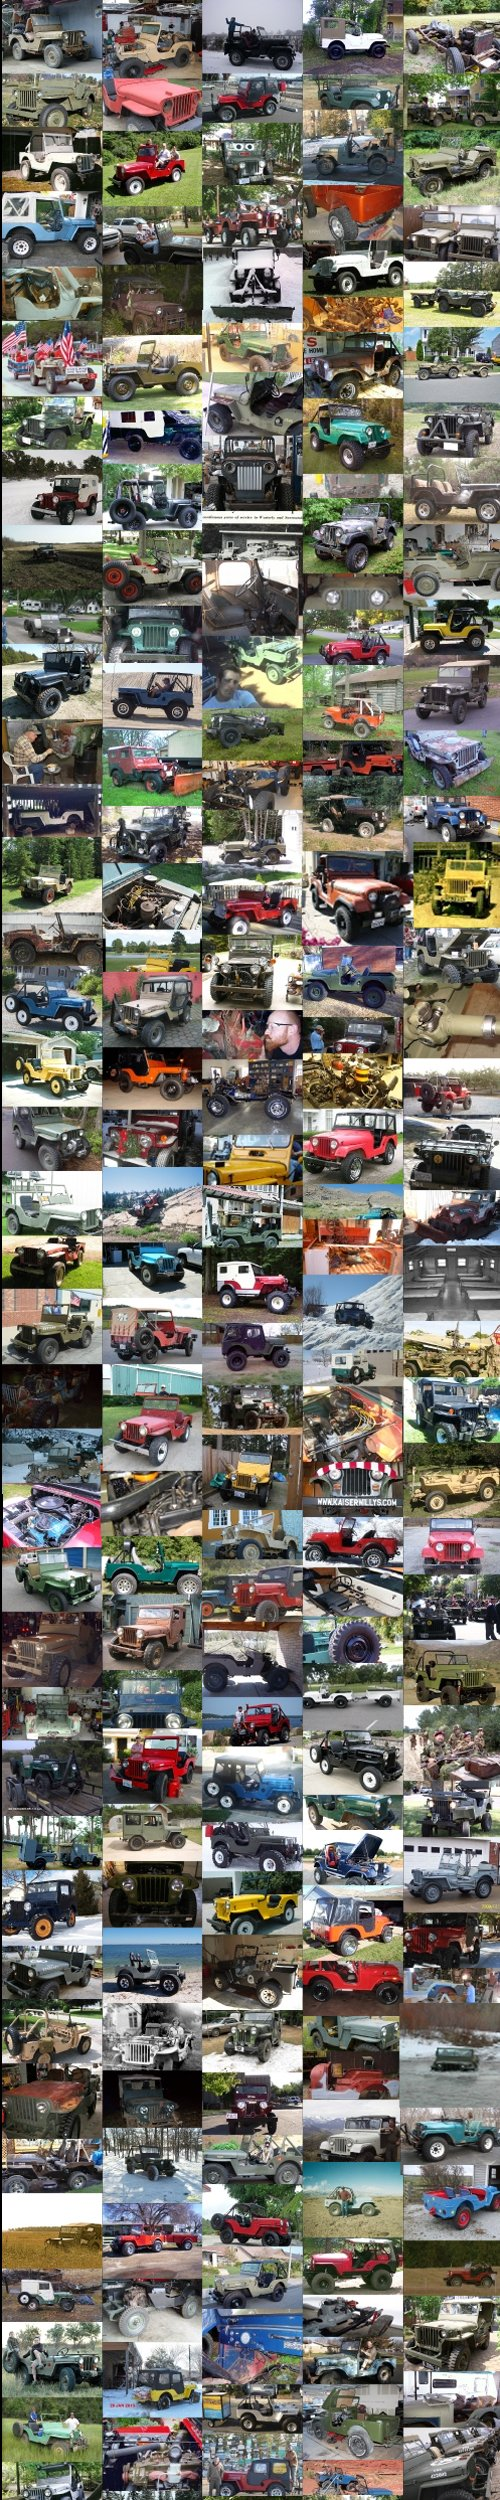 Kaiser Willys Jeep Family Photo Album